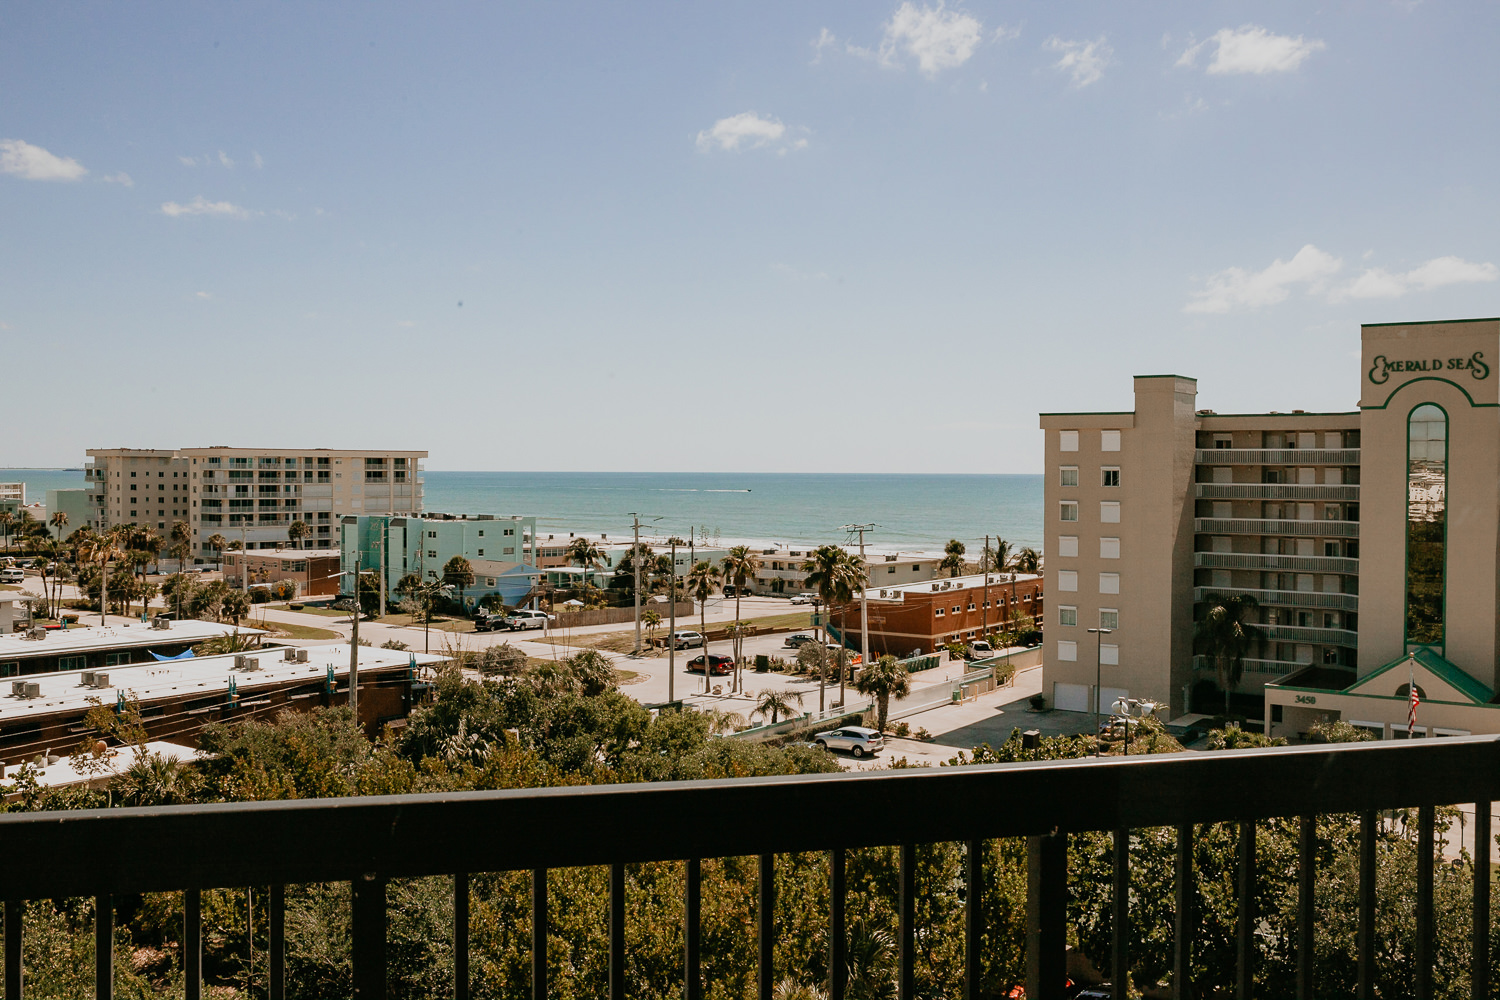 view of cocoa beach from hotel balcony